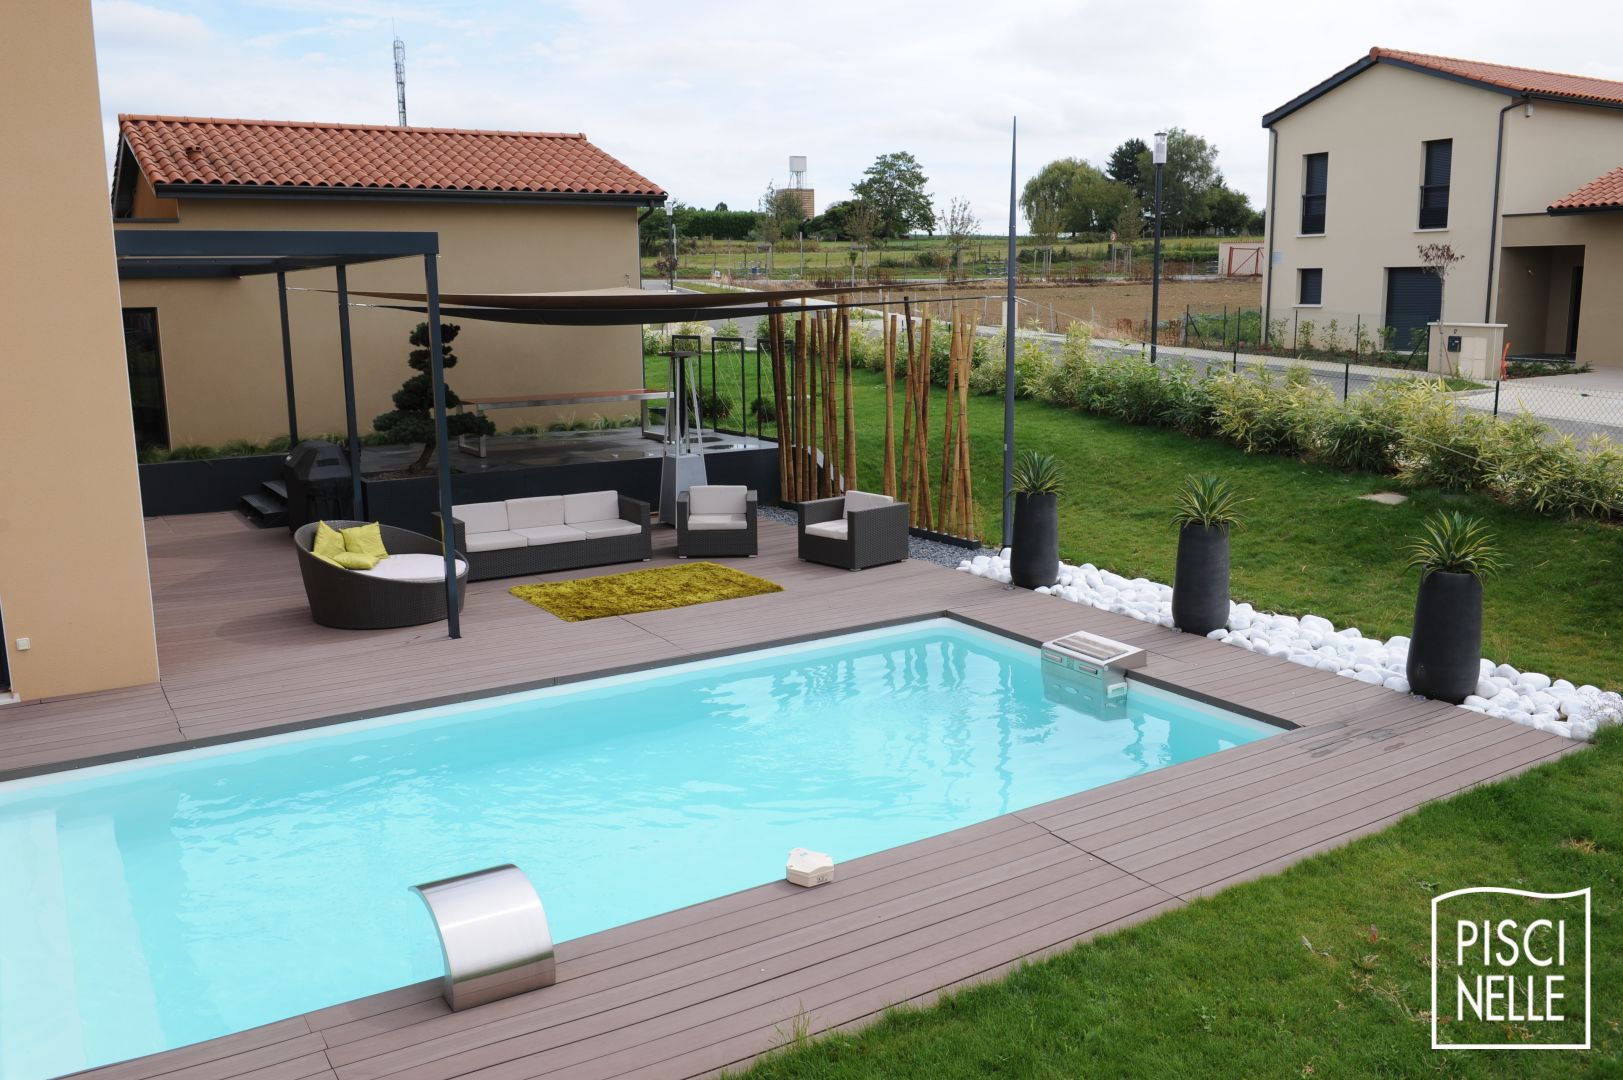 Emejing Piscine Jardin Rectangulaire Gallery - Amazing House Design ...